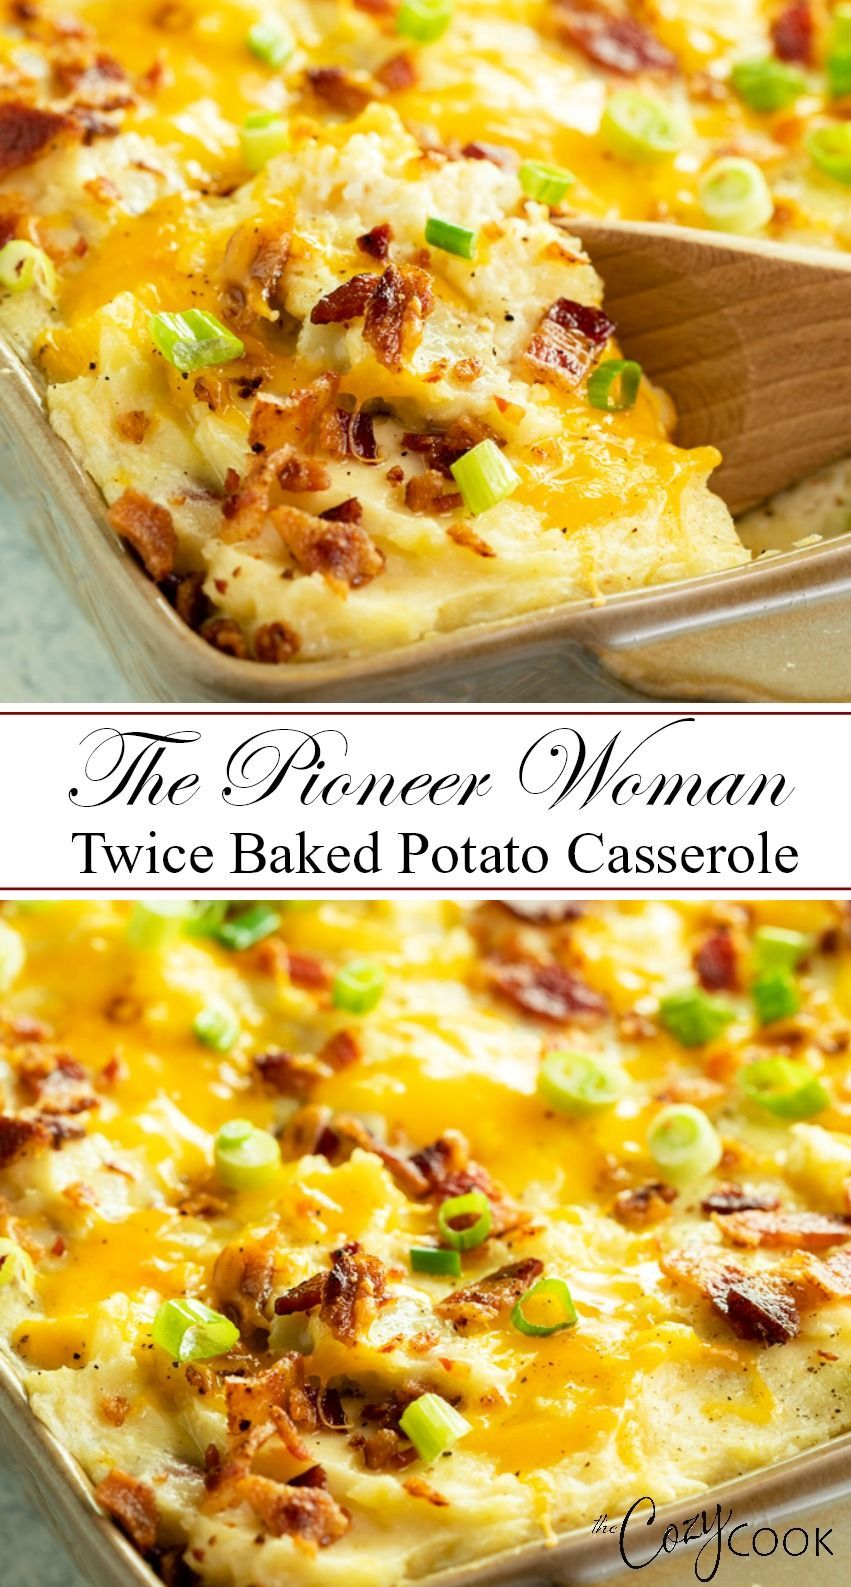 This Easy Twice Baked Potato Casserole From The Pioneer Woman Is A Perfect Side Dish Easy To Twice Baked Potatoes Casserole Potatoe Casserole Recipes Recipes